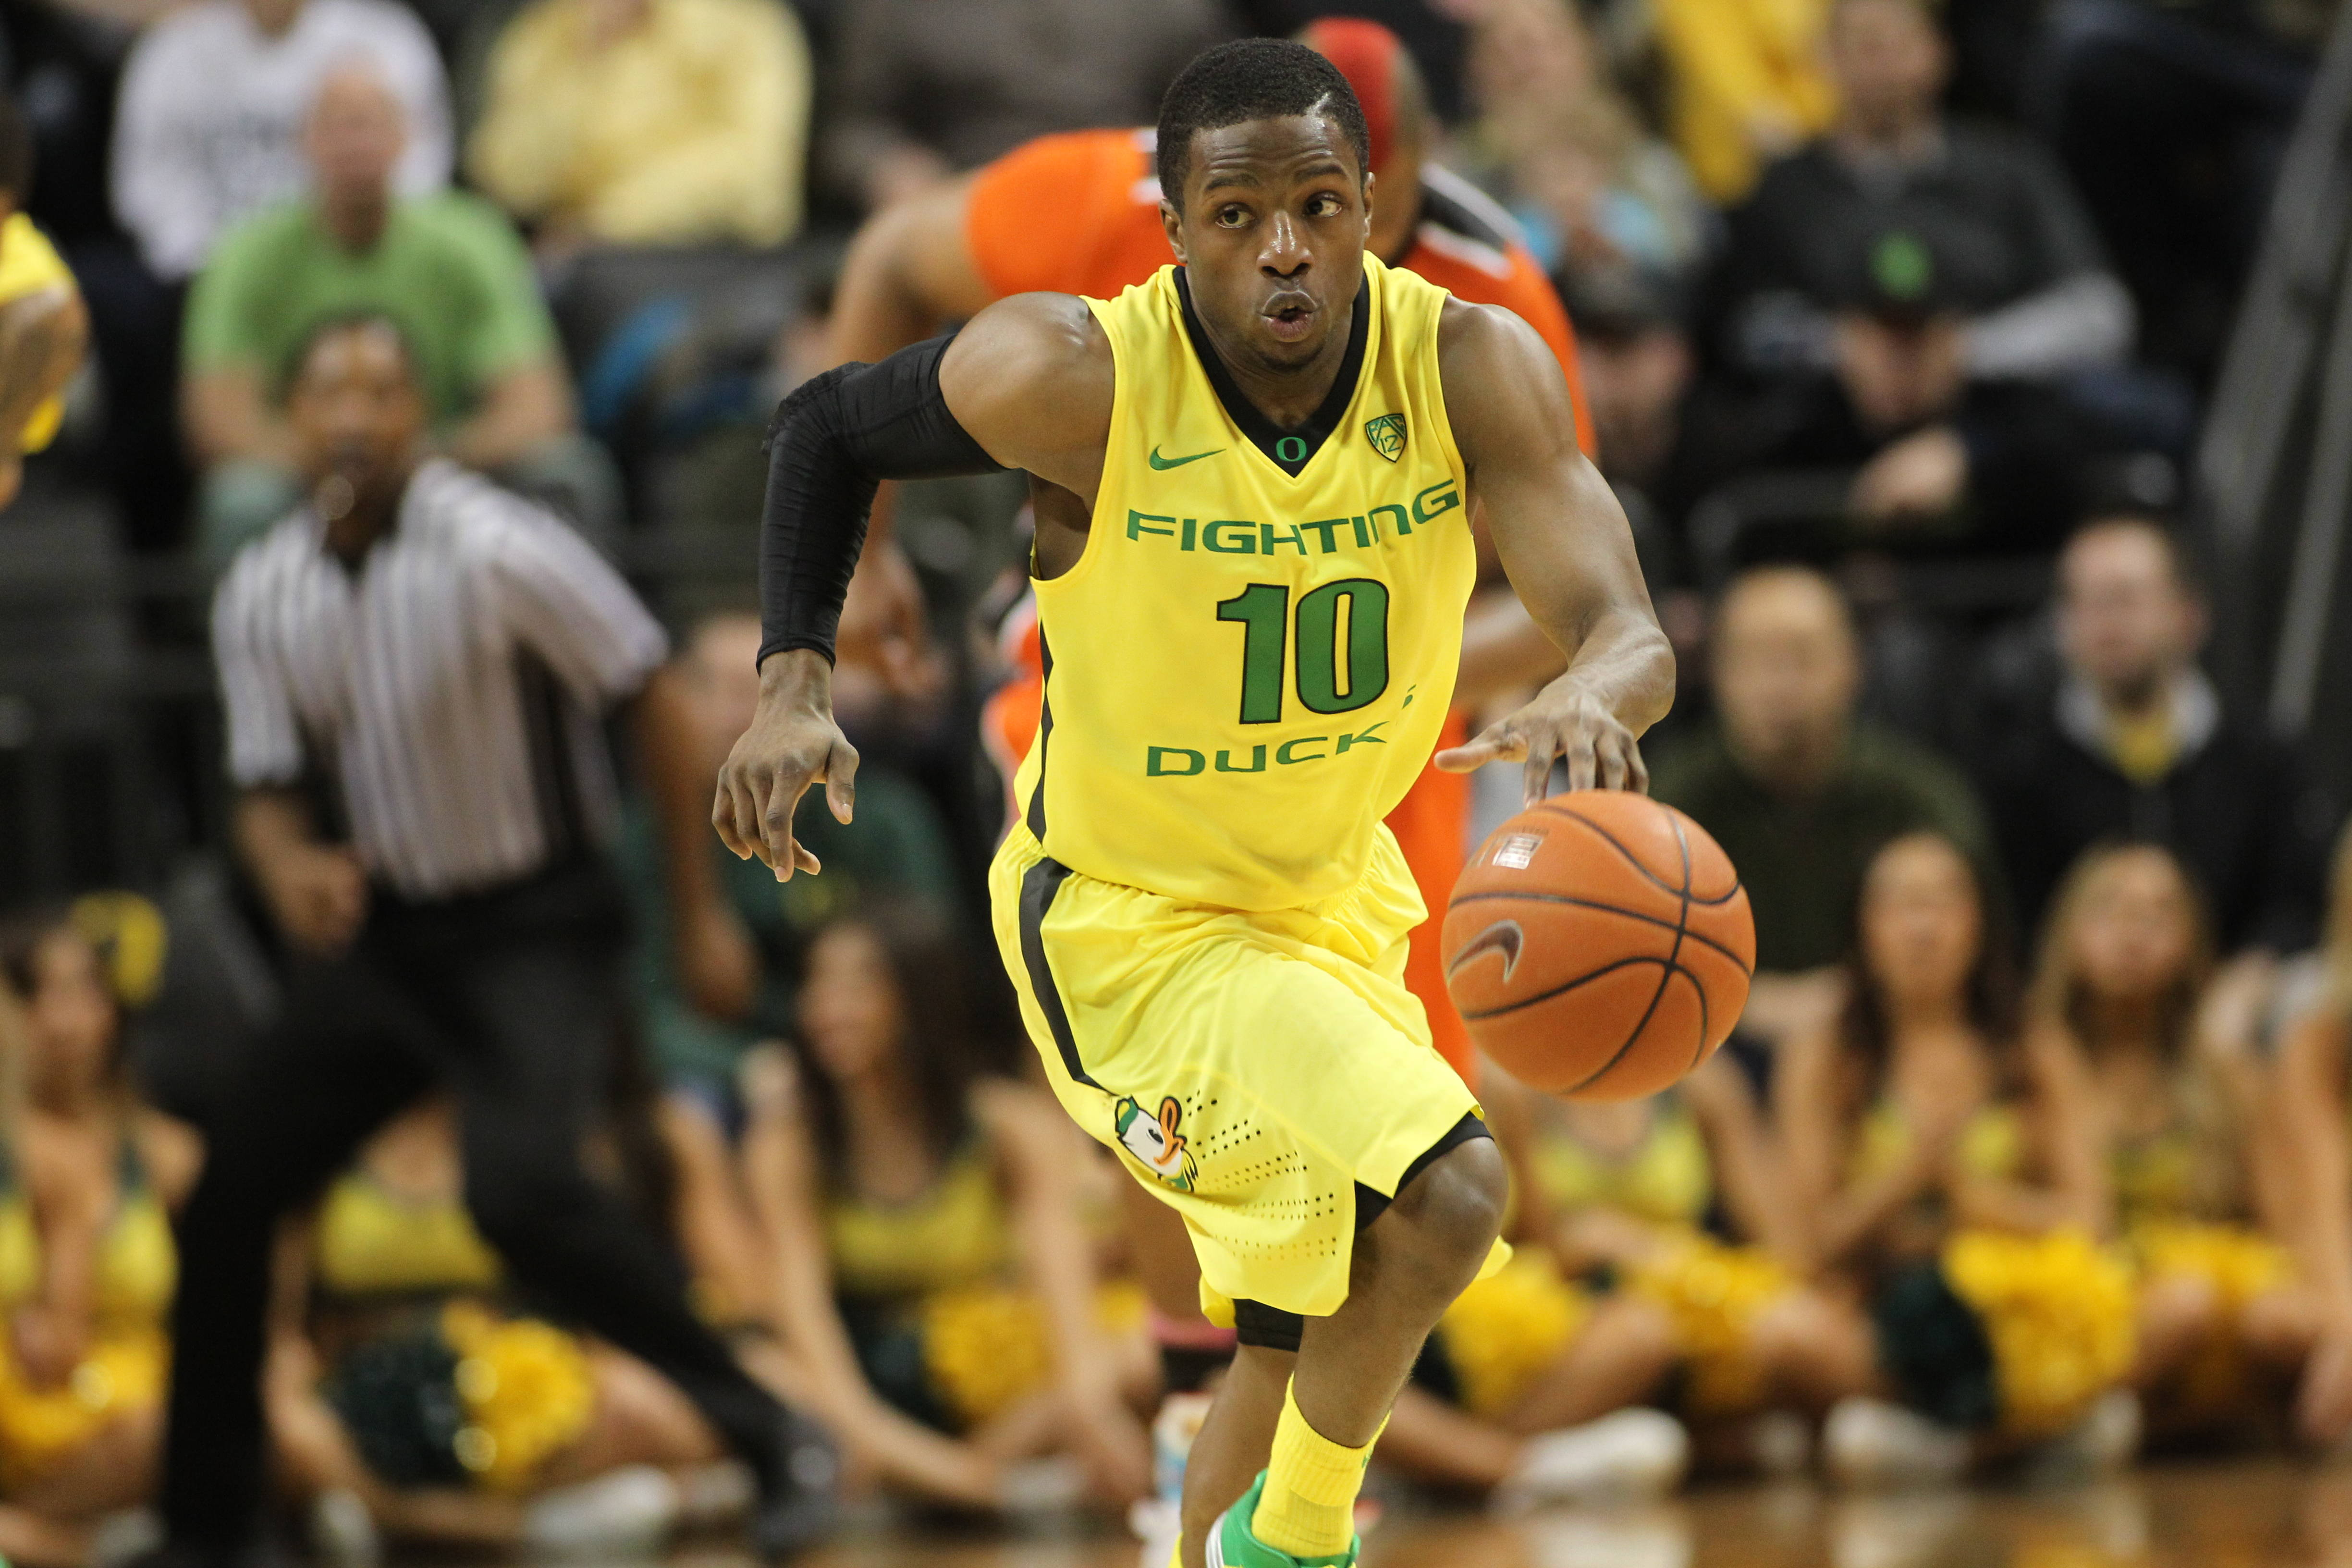 efcb786cf98 No. 12 Oregon Faces No. 5 Oklahoma State In Second Round Of The NCAA ...